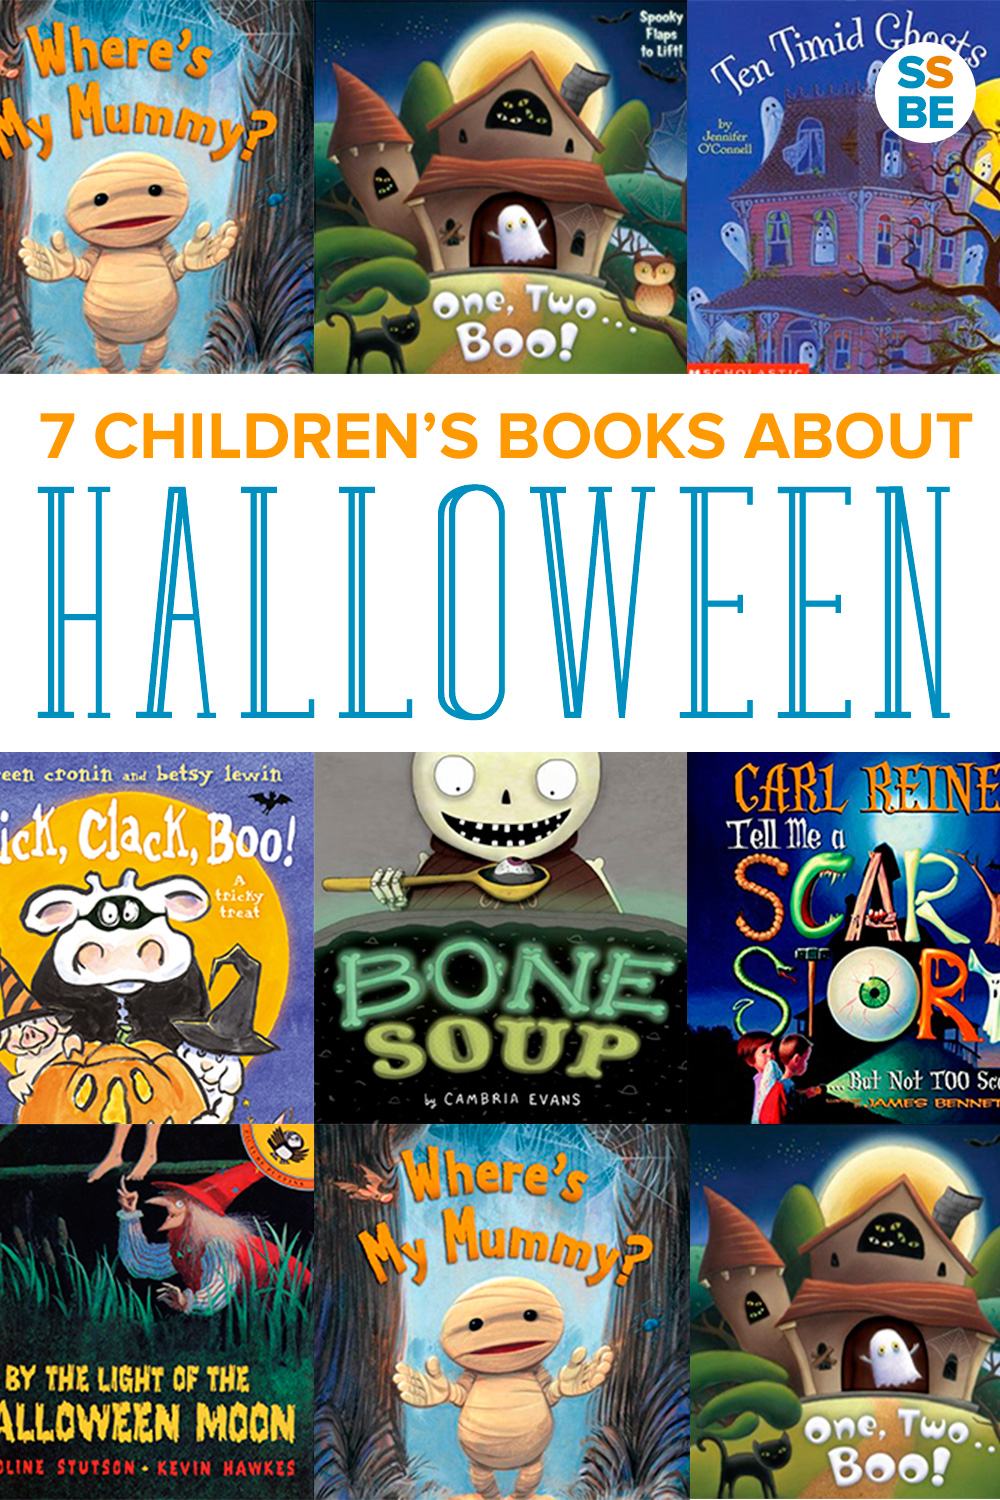 Get ready for fun with these Halloween books for kids. Read these books on mummies, ghosts and pumpkins as you head into our spookiest season!